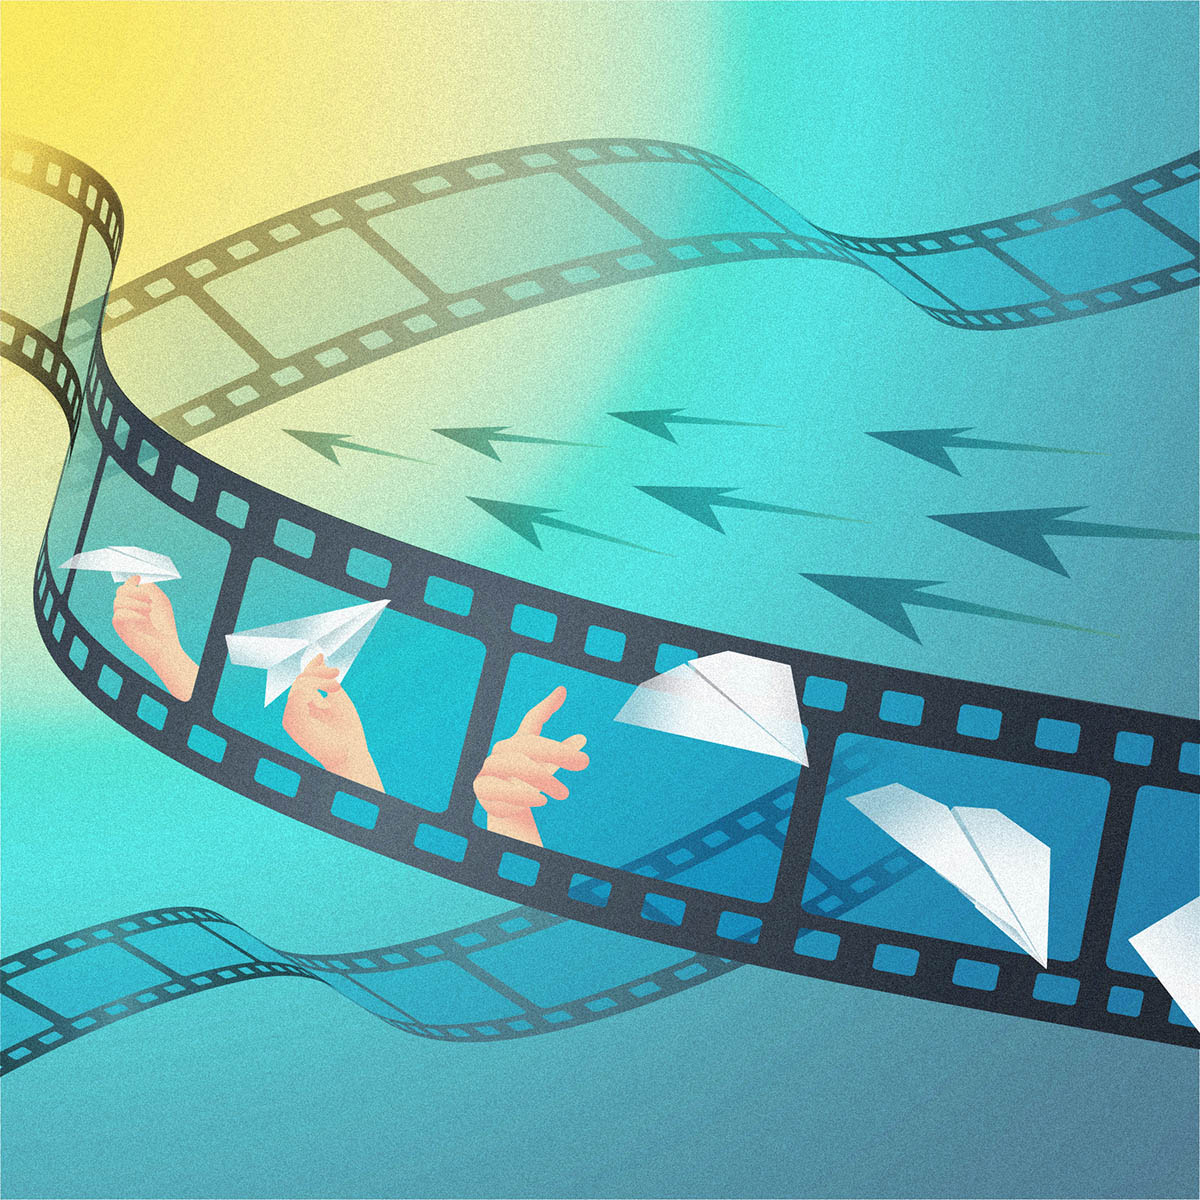 Artist's illustration of a film reel showing a paper plane being thrown, with arrows to suggest reverse play.